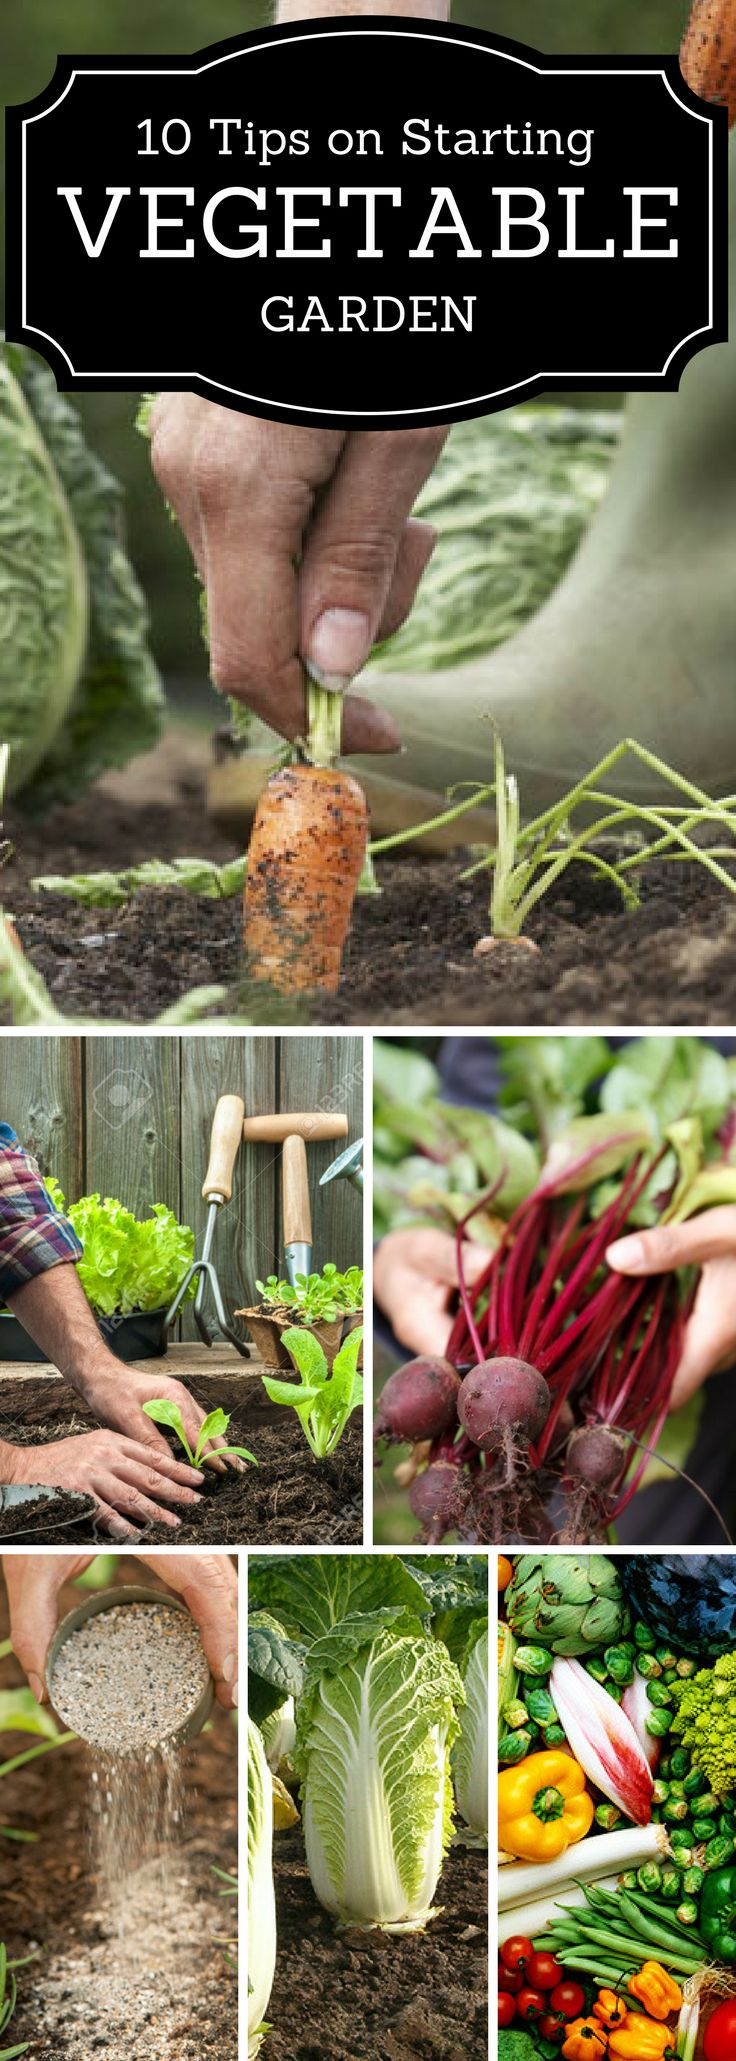 2727 besten vegetable gardening bilder auf pinterest, Gartengerate ideen